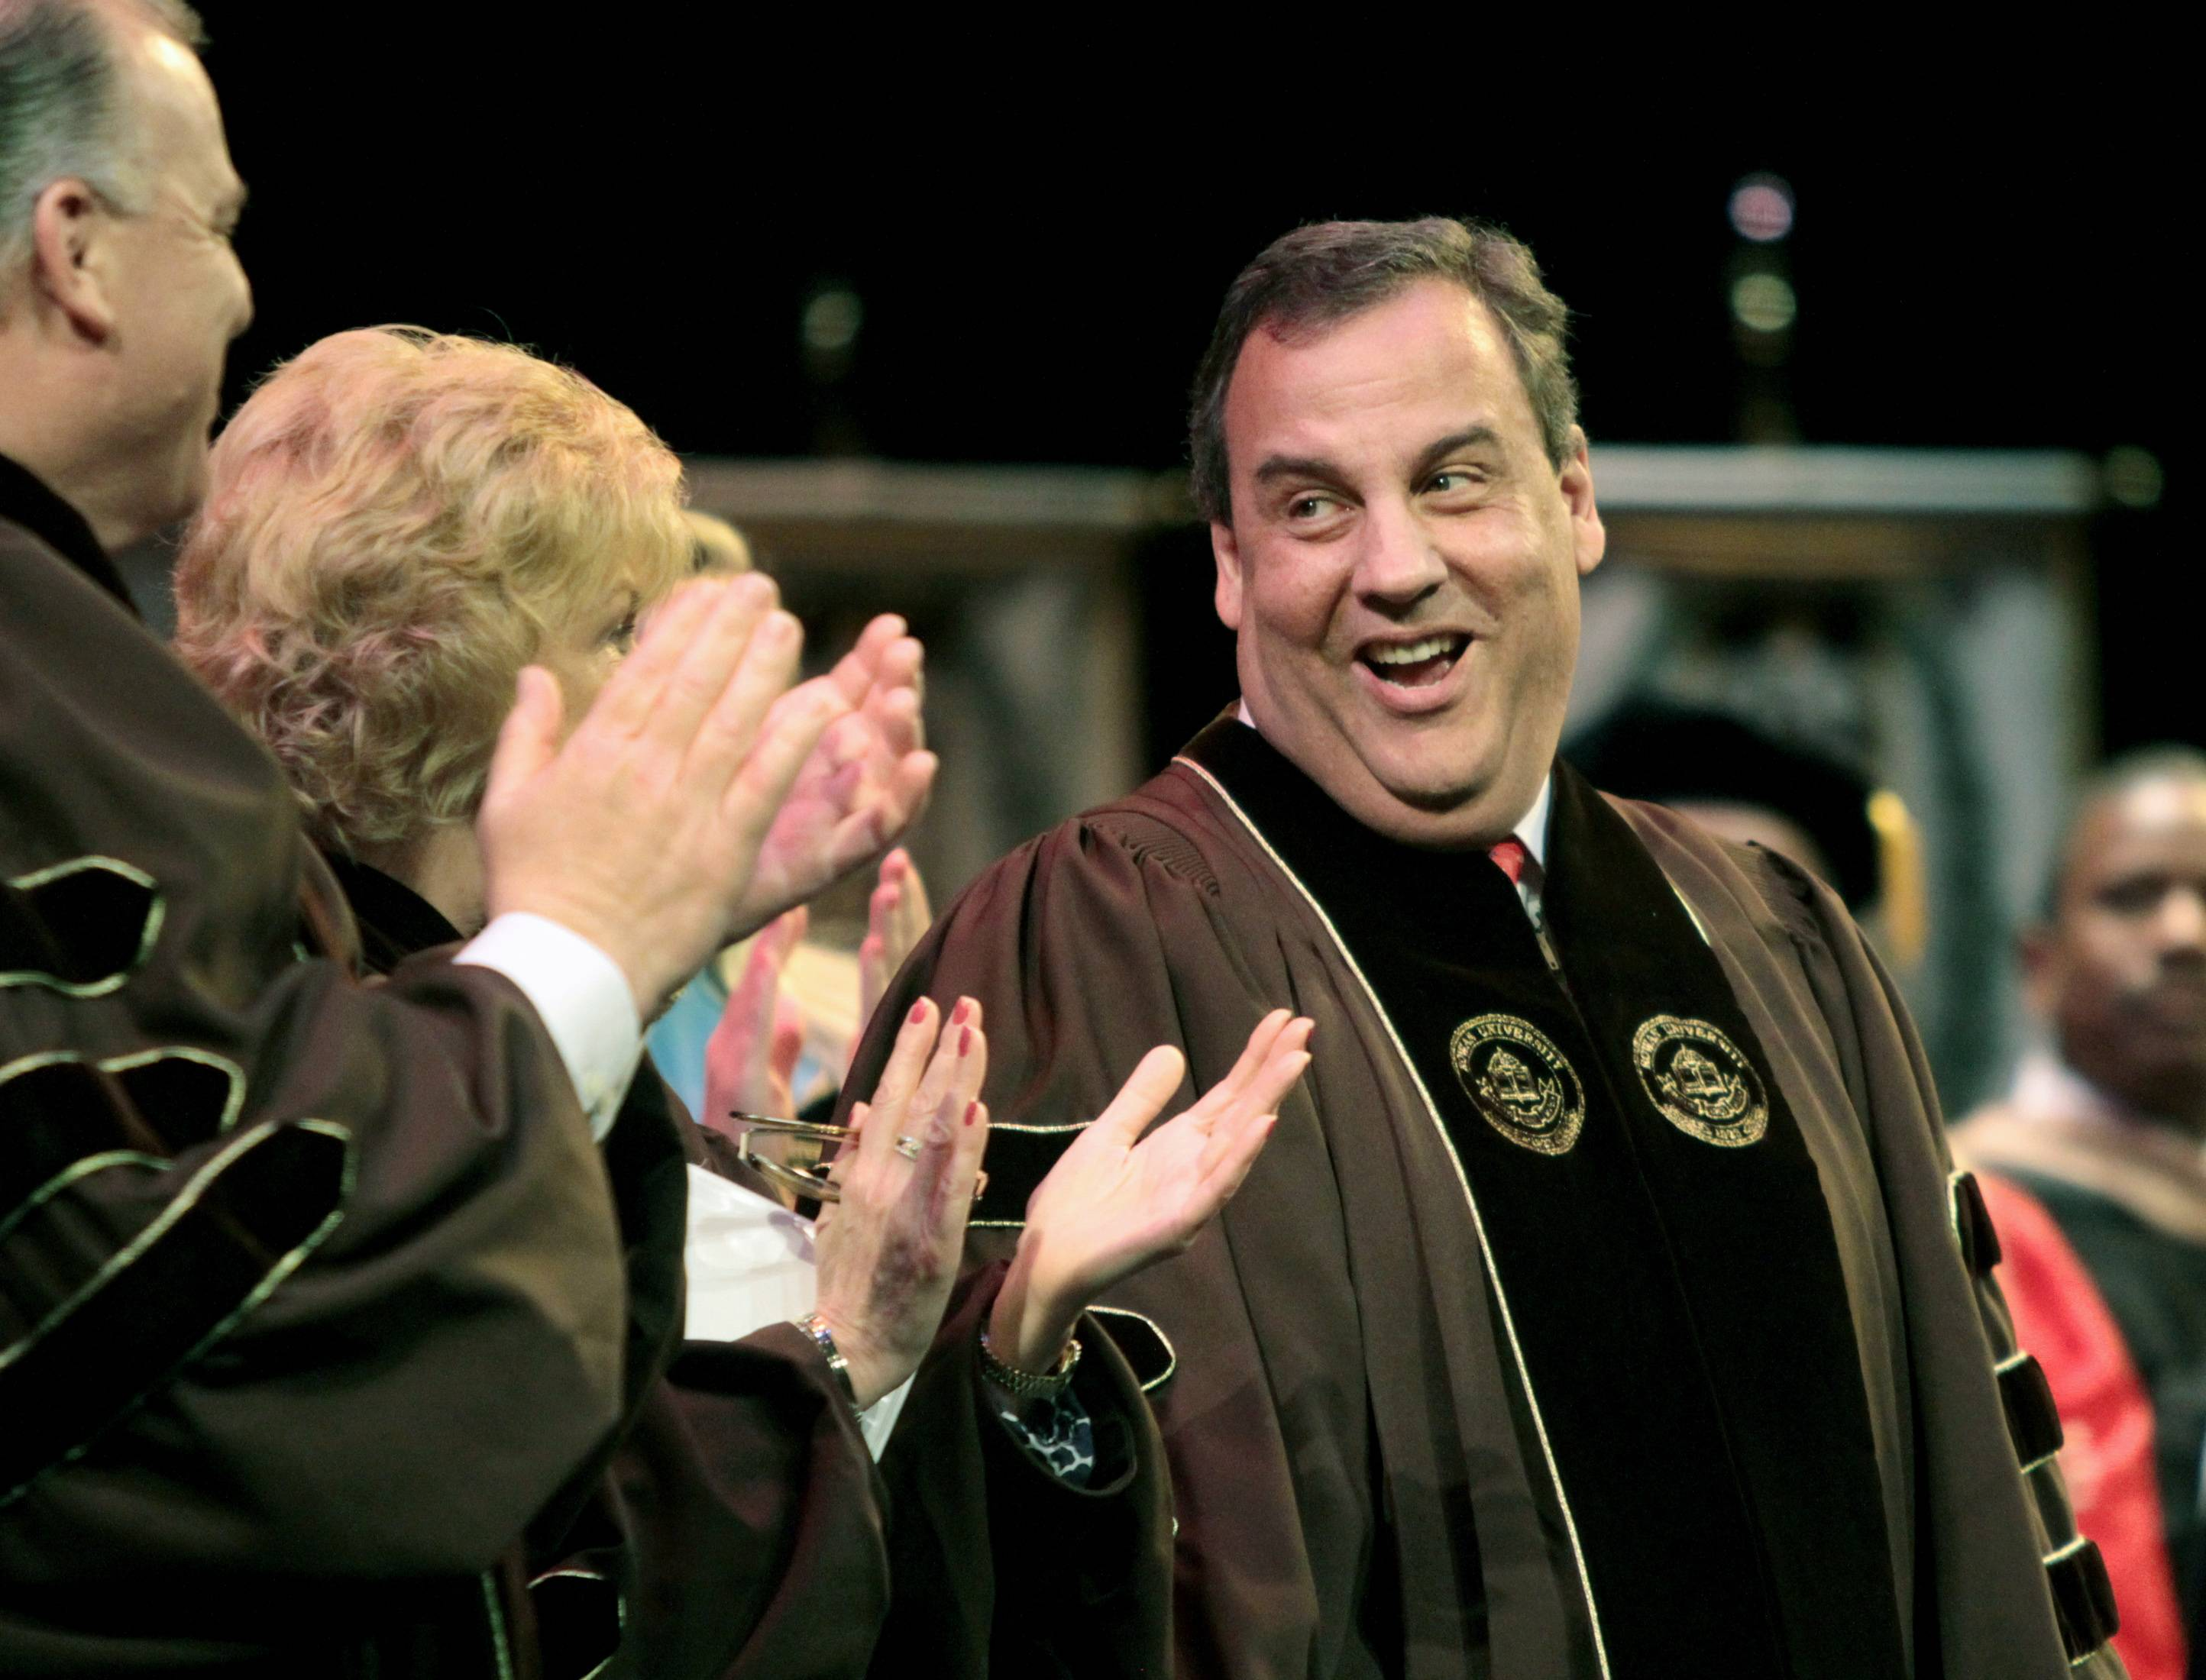 Gov. Chris Christie smiles Friday at state Senate President Stephen Sweeney after delivering his address during Rowan University's Commencement in Glassboro, N.J.  Christie told the graduates that their new degrees will provide opportunities but do not guarantee success.